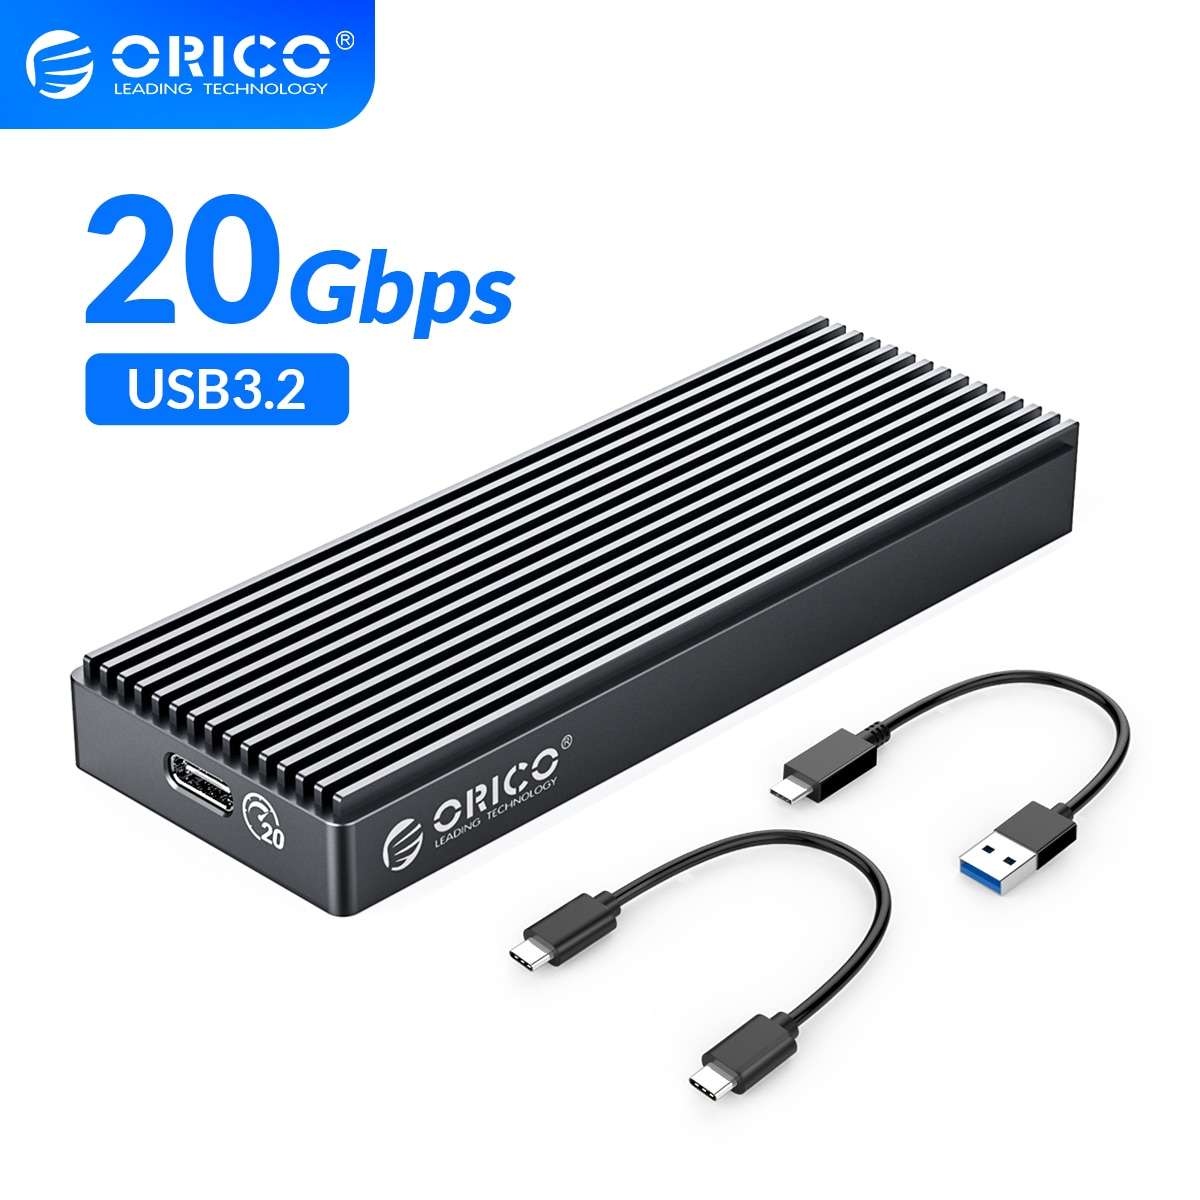 ORICO M.2 NVME SSD Case/Enclosure ASM2364 Master Chip 20Gbps USB3.2 GEN2 x2 Type-C For M.2 Hard Drive Up to 2TB A/C to C Cables